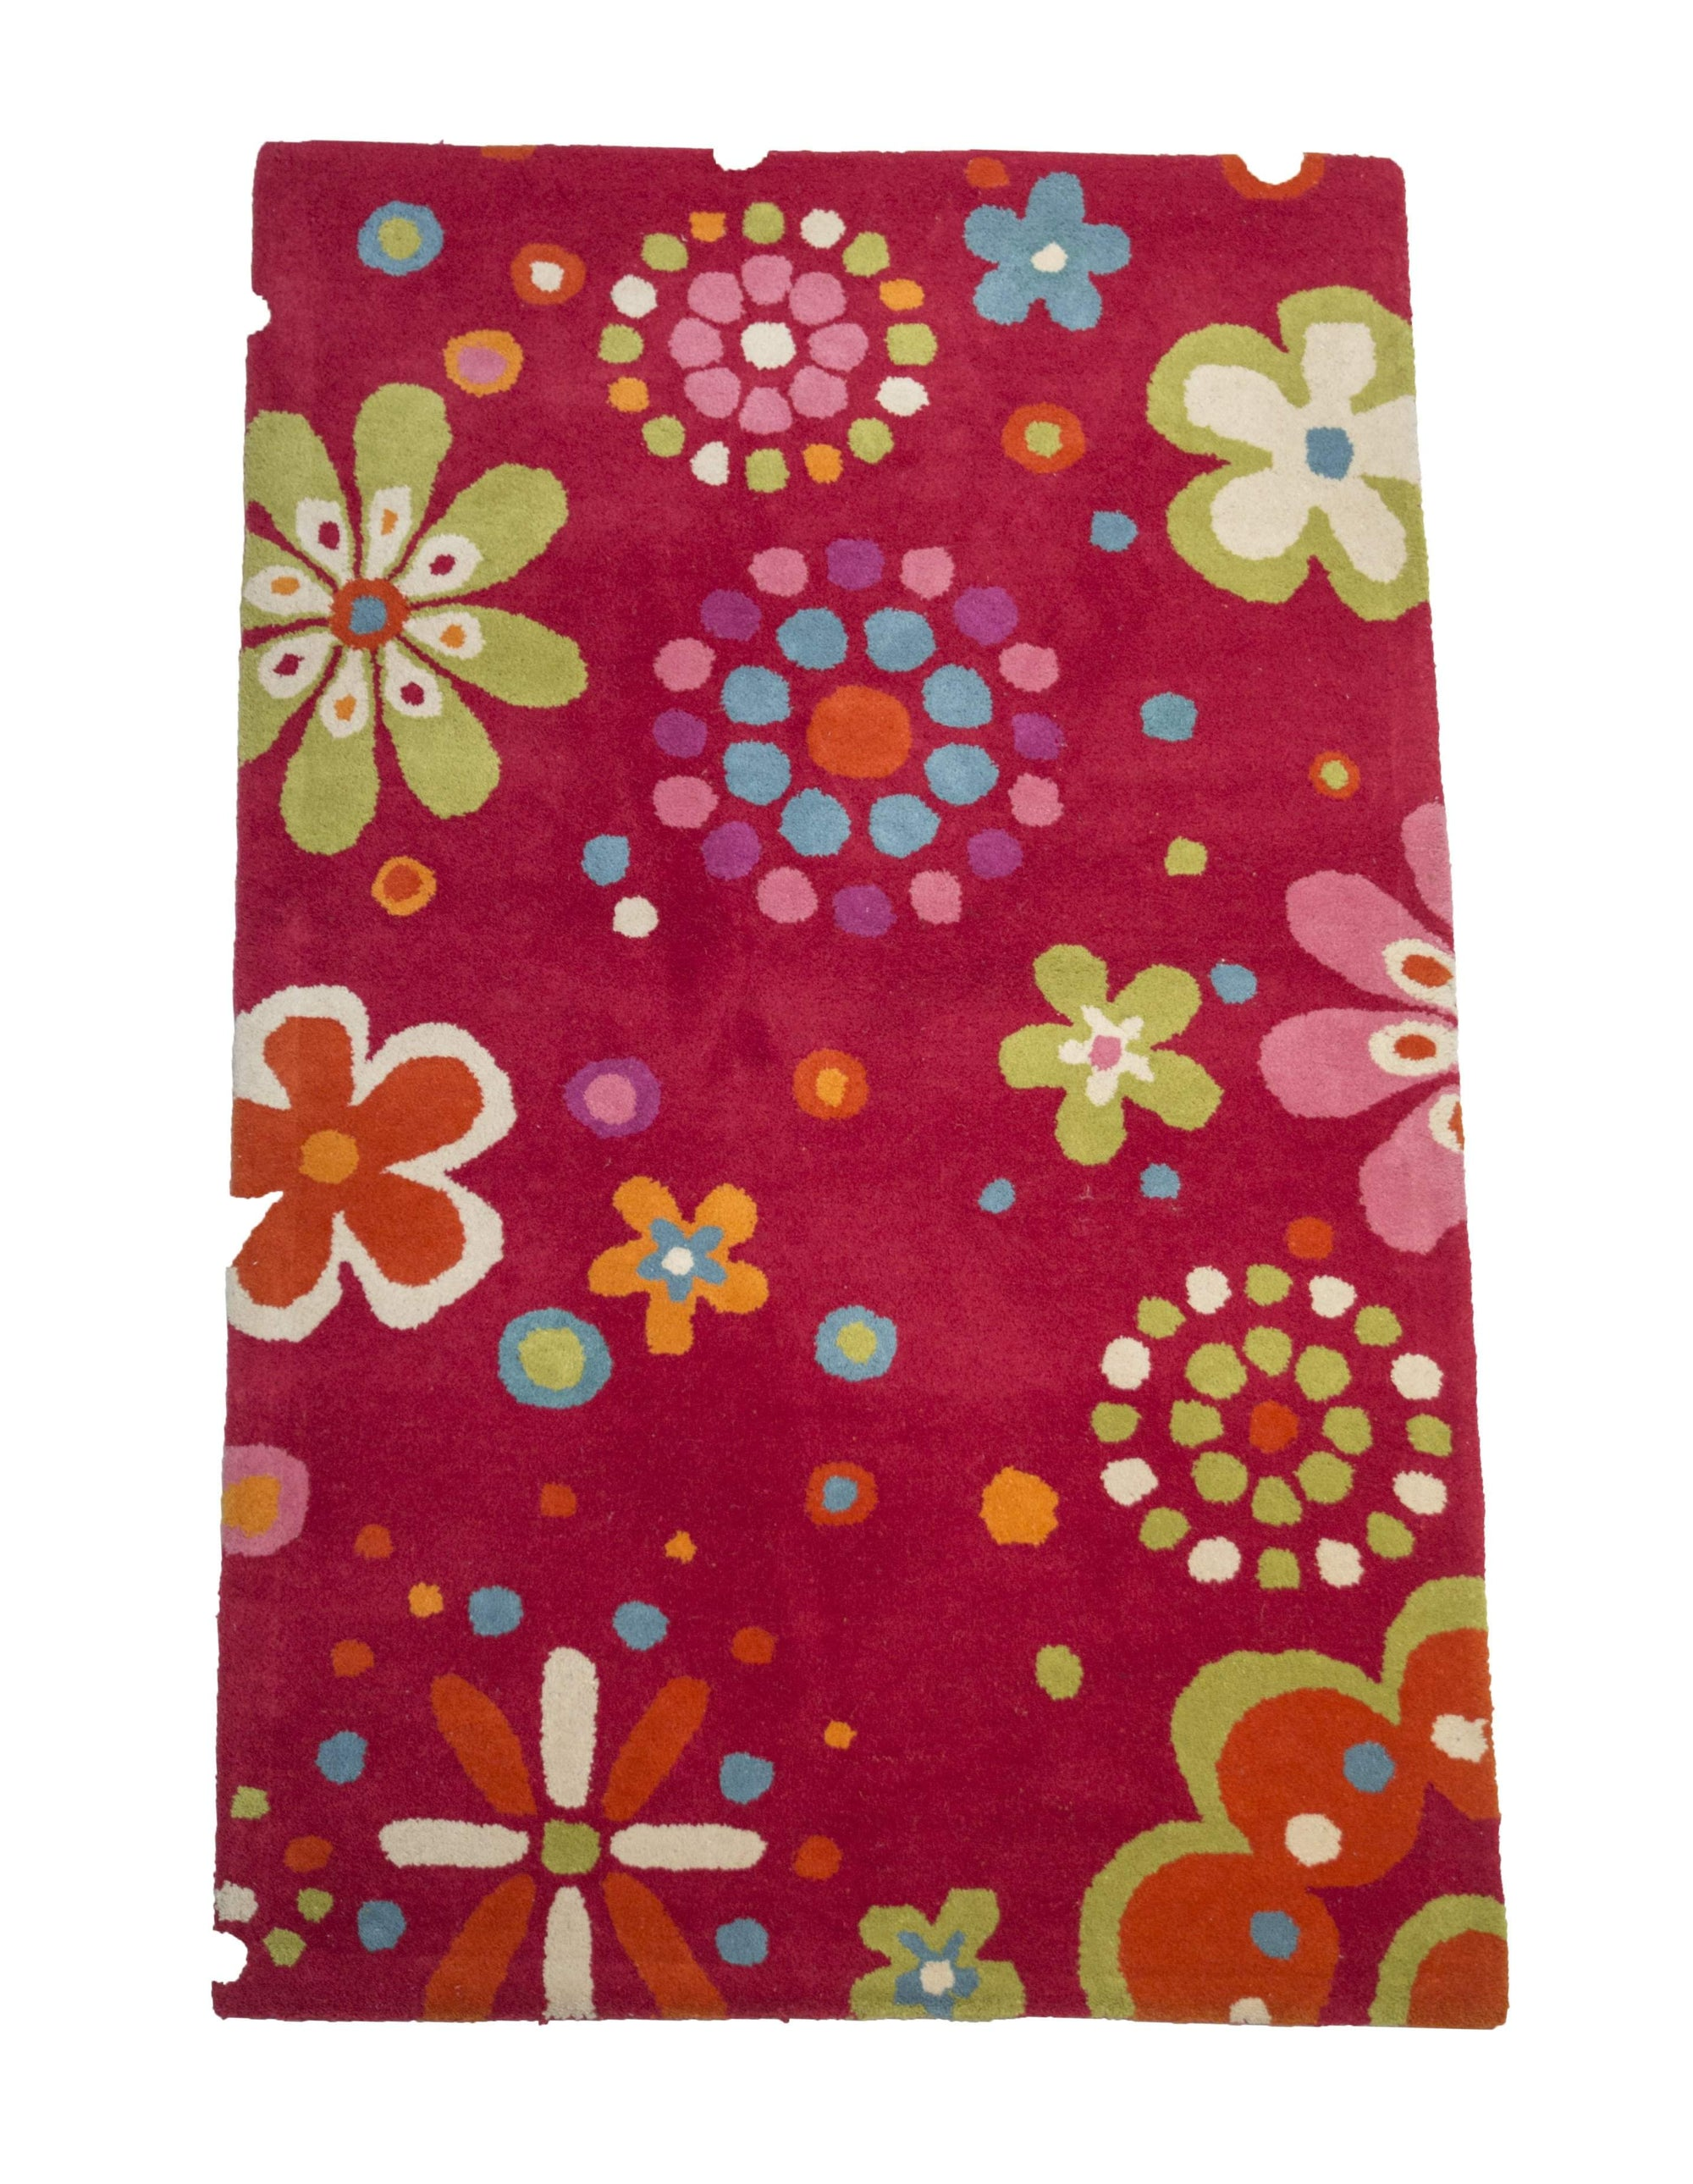 Flowers And Dots Kids Room Rug-Rug Shop and More